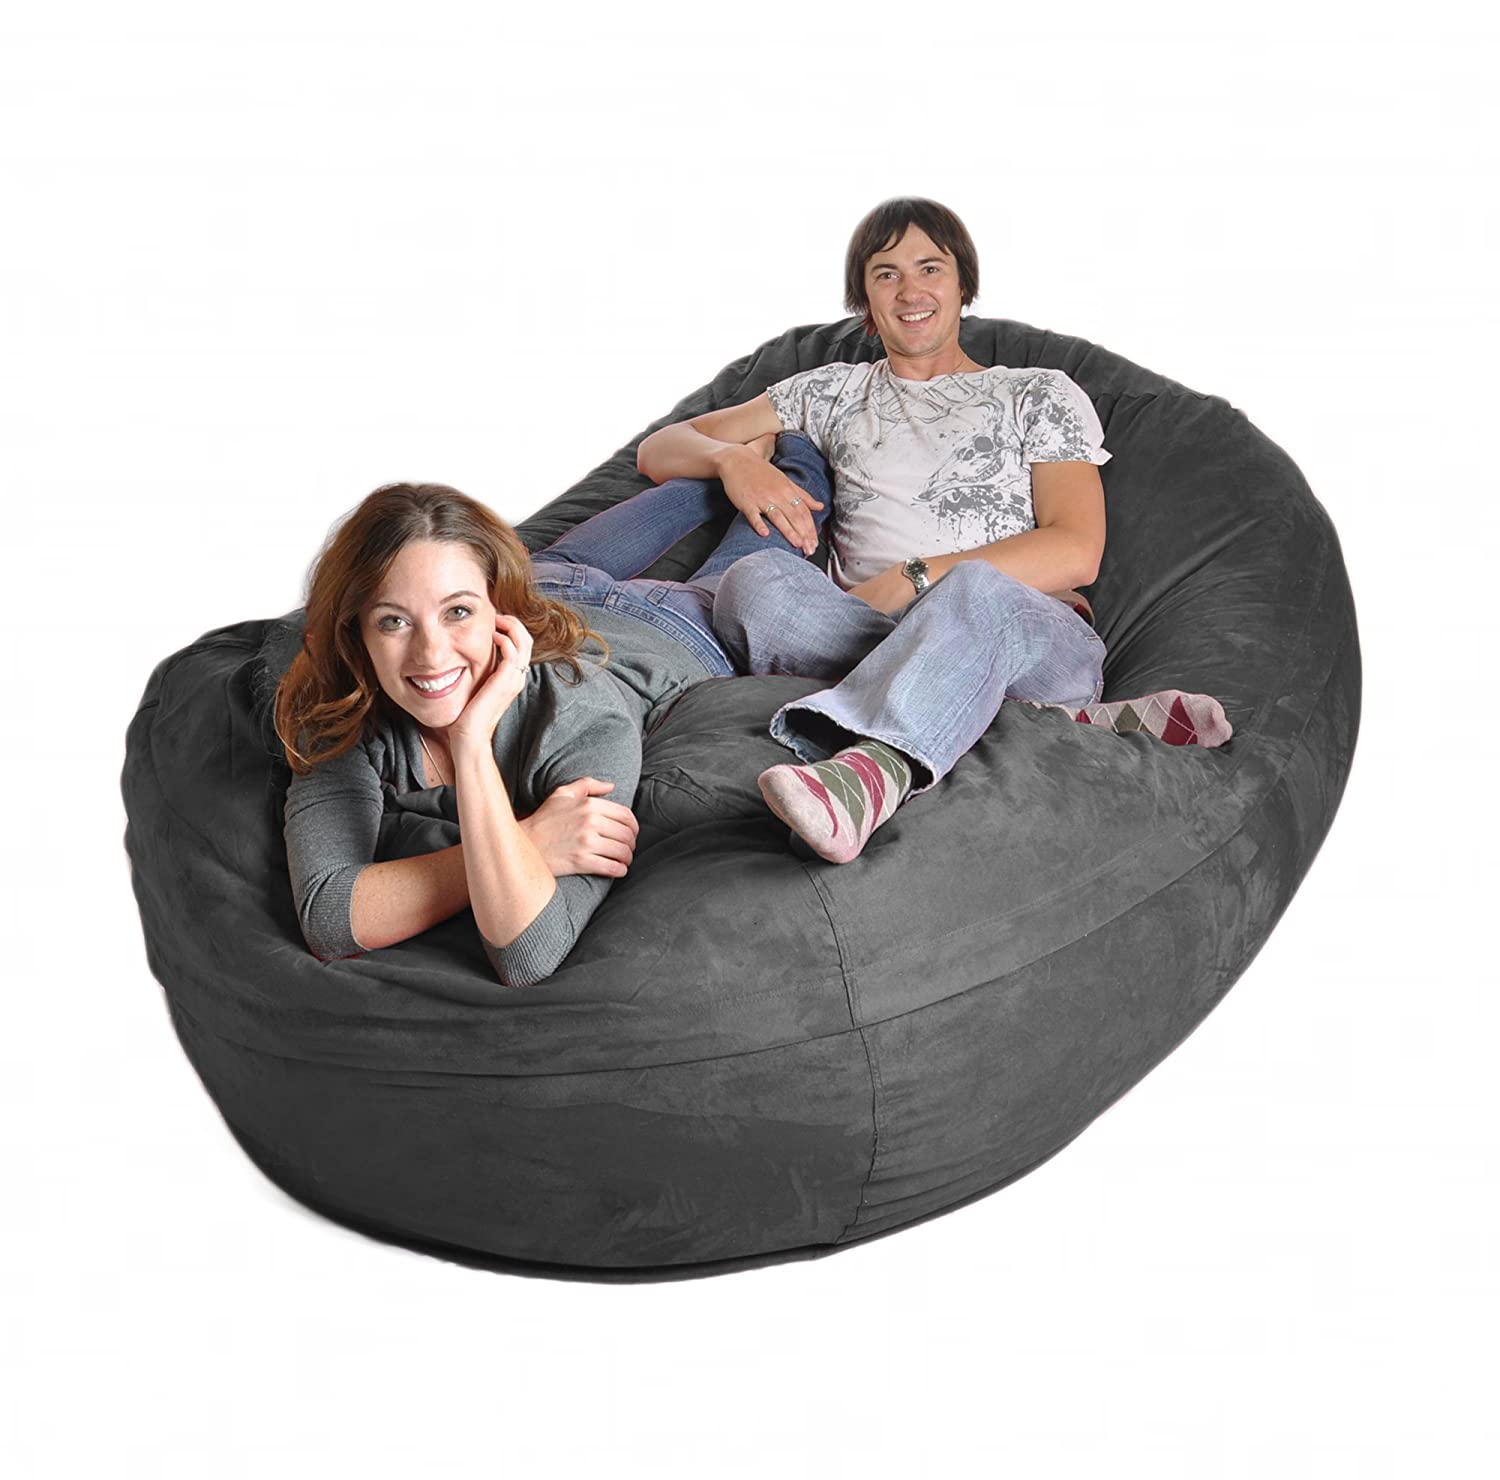 SLACKER sack 8-Feet Foam Microsuede Beanbag Chair Lounger, Giant, Charcoal Gray